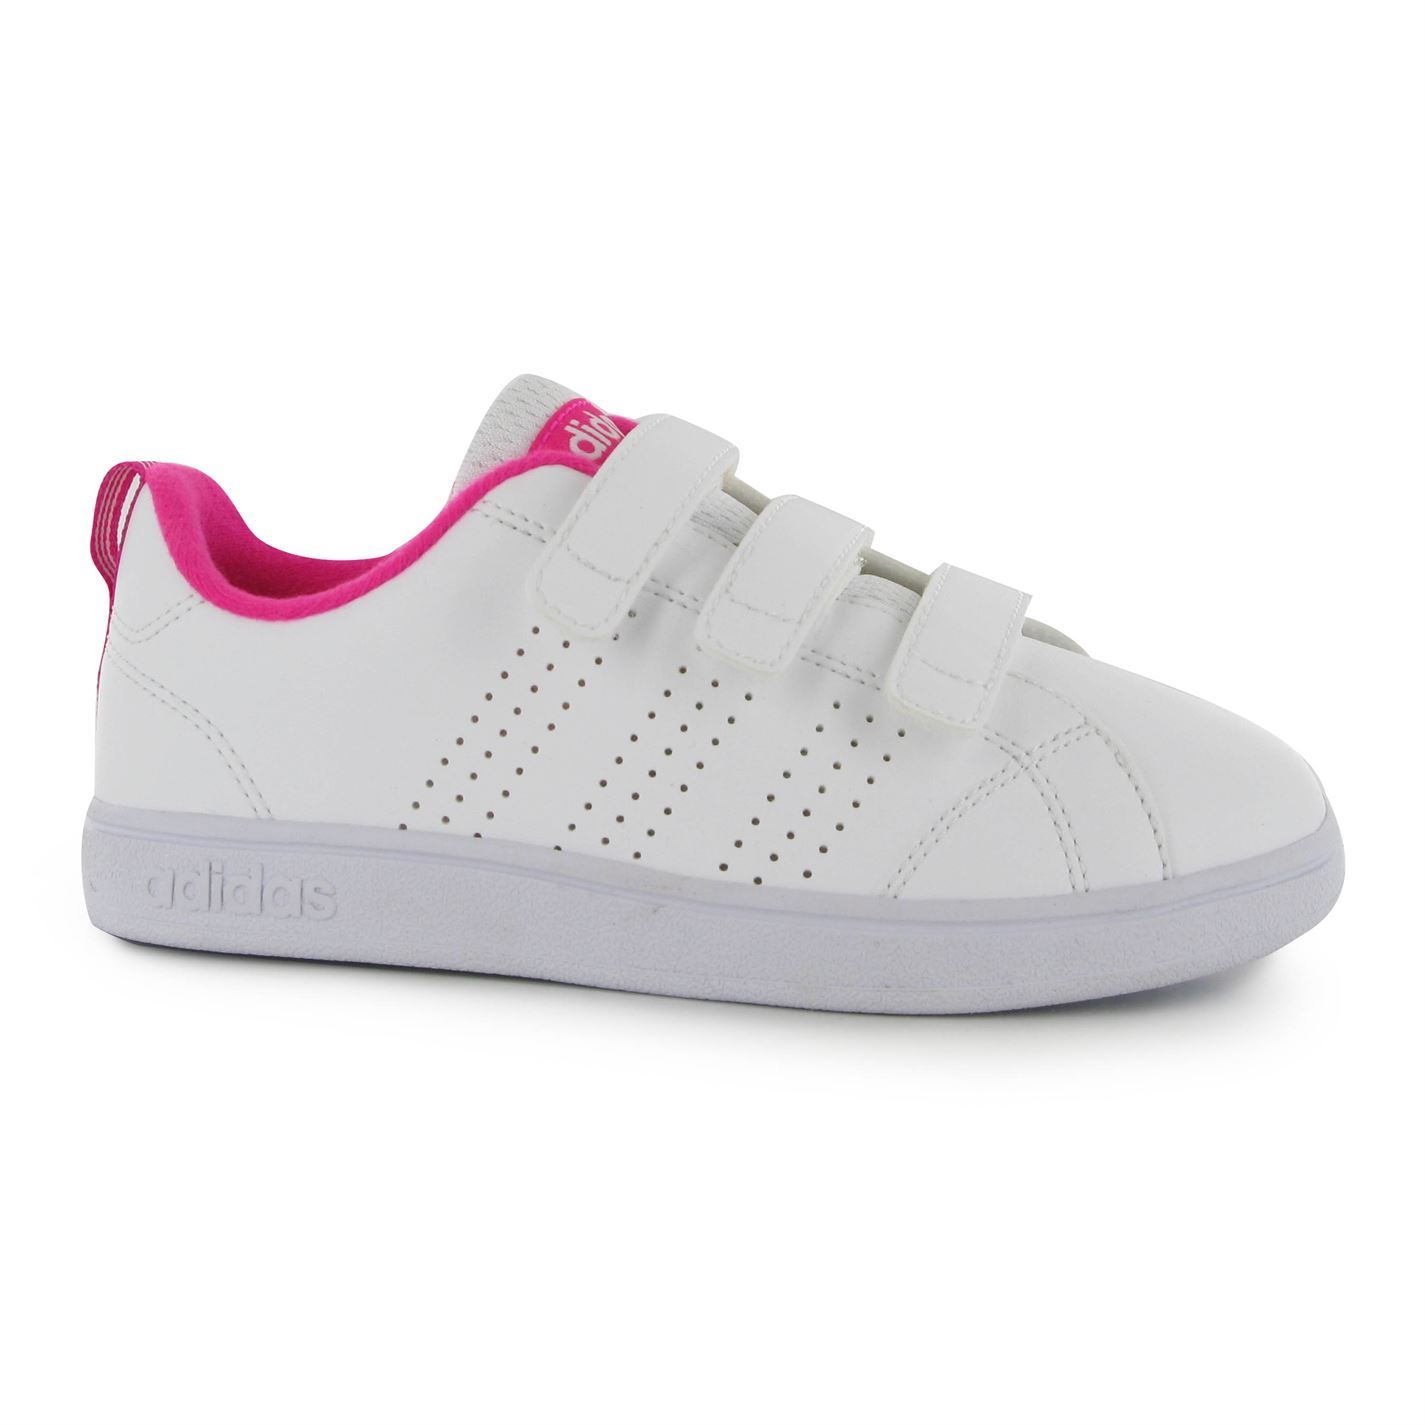 adidas advantage cf trainers junior girls white pink sports shoes sneakers ebay. Black Bedroom Furniture Sets. Home Design Ideas